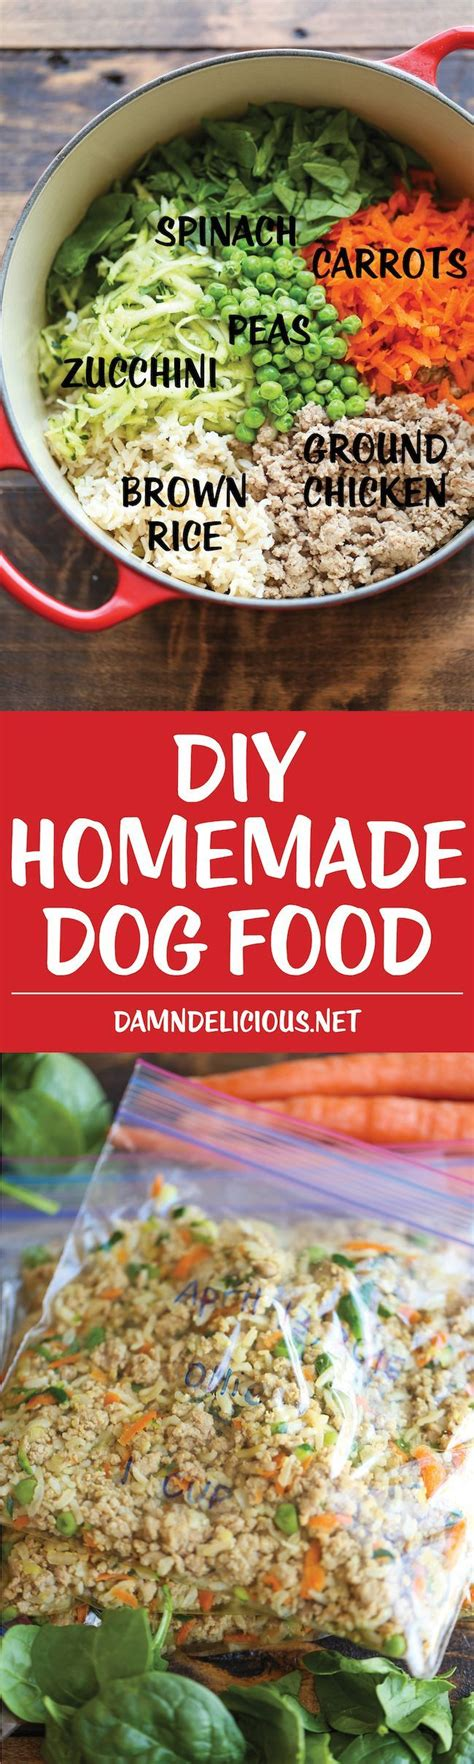 recipes for dogs 100 food recipes on food canned food and food for